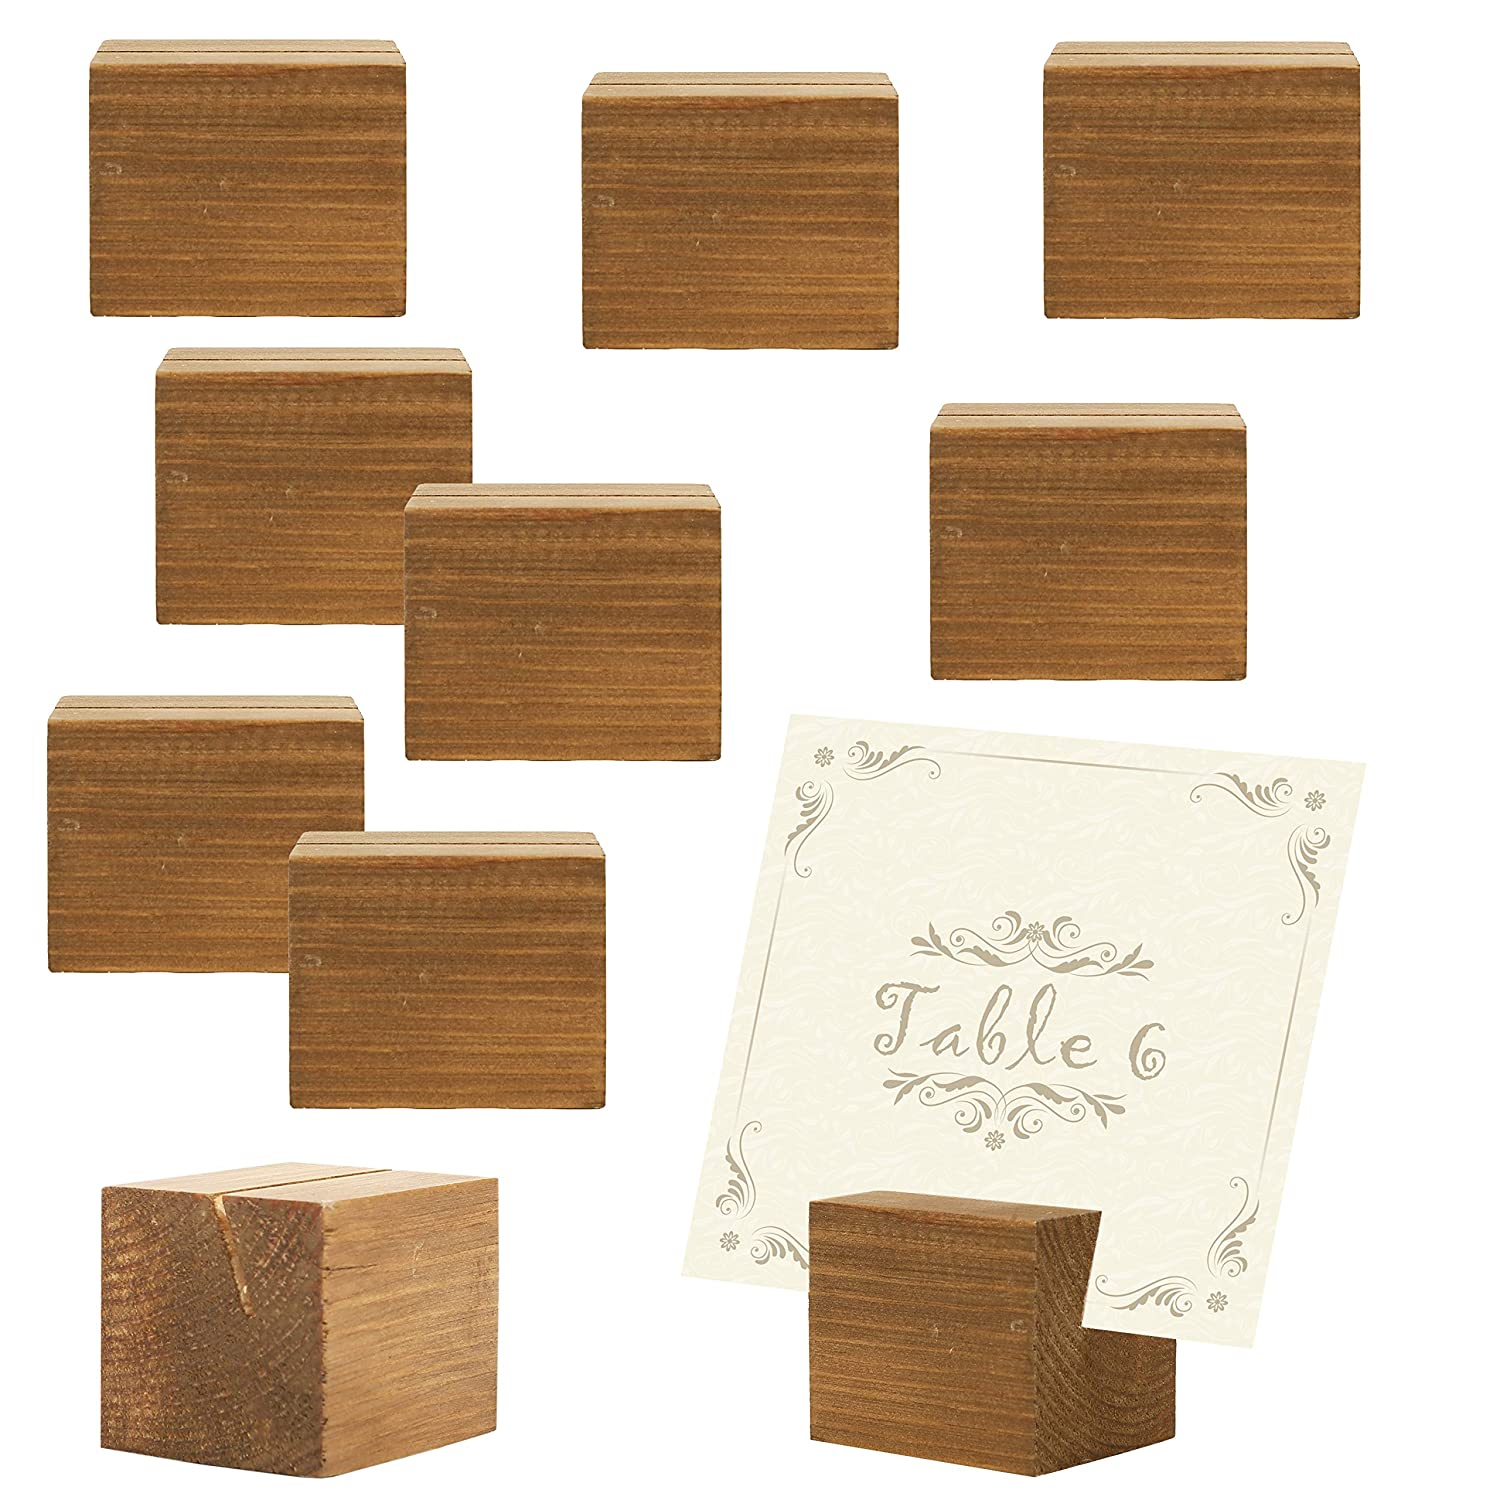 MyGift 10 Piece Rustic Natural Wood Rectangular Table Place Card Holders, Beige SPOMHNK2193